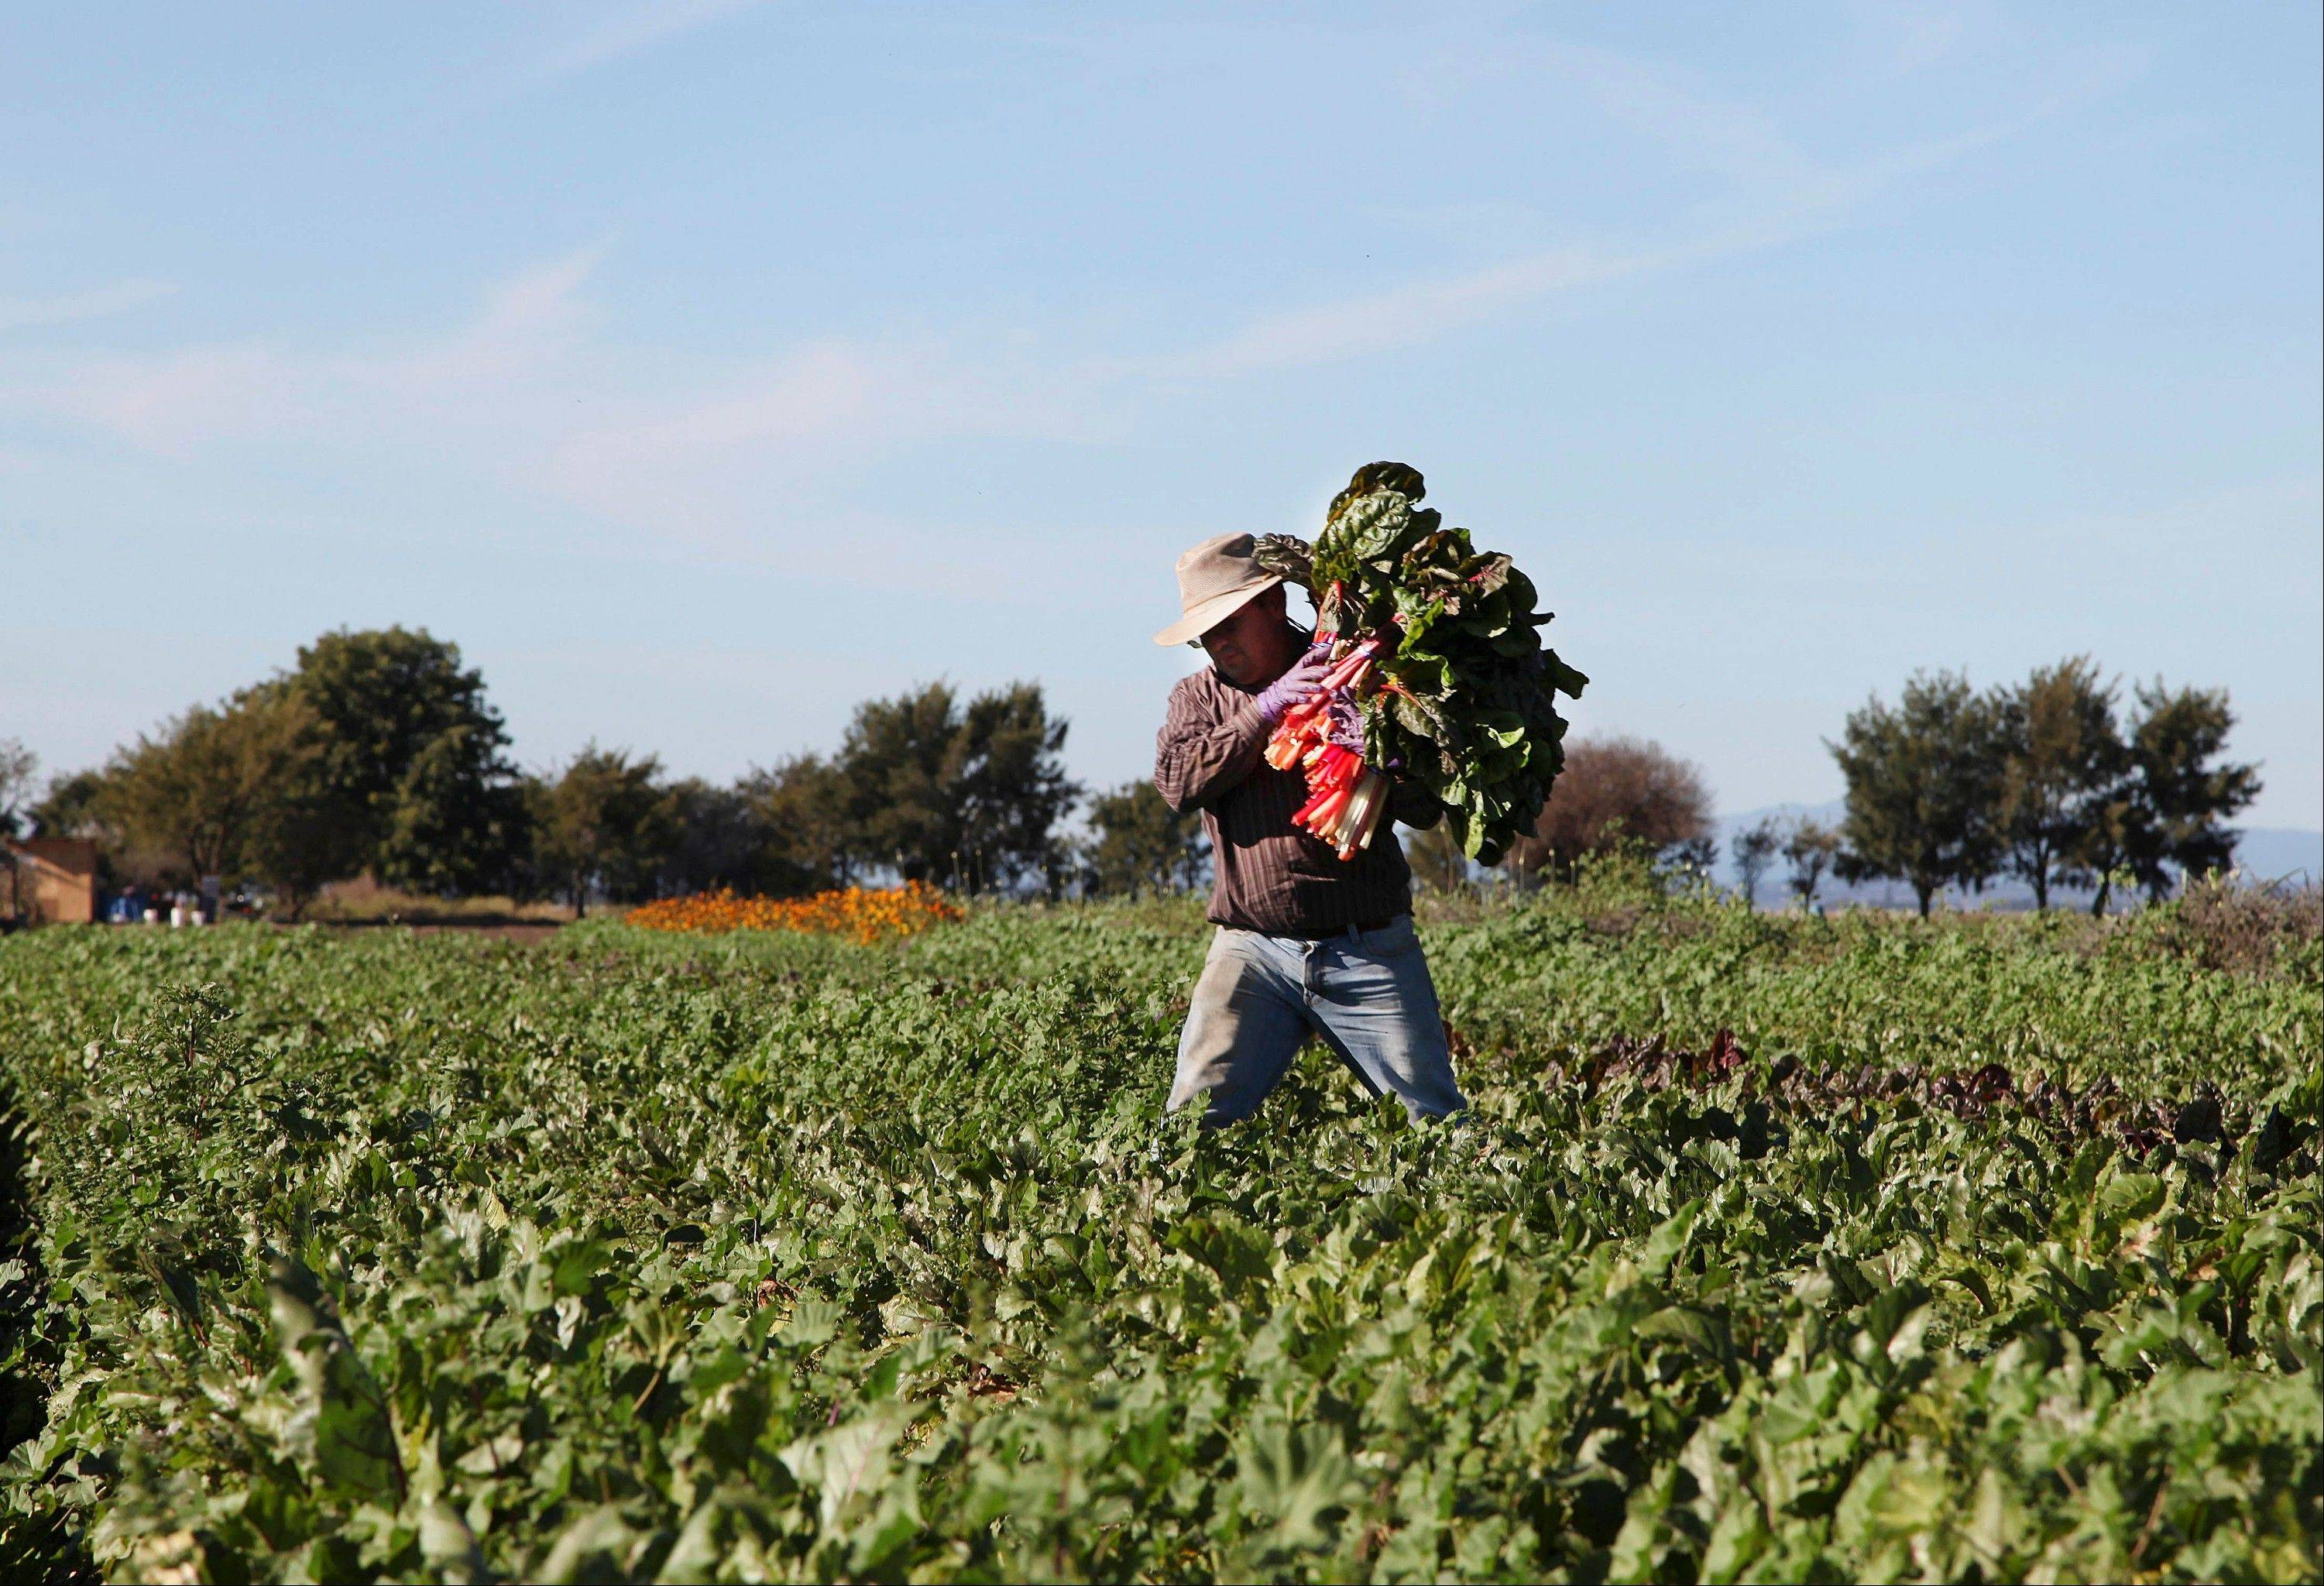 In this Nov. 10, 2012 file photo, Omar Chombo carries a bunch of chard across the field which he leases from the Agriculture and Land-Based Training Association, known as ALBA, in Salinas, Calif. The organization helps farmworkers, most of whom are first generation Latinos, to become independent organic farm operators. With Congress considering a new immigration reform proposal that includes a speedier process to legal status for farmworkers, experts say, the best indicator of how such reform would play out is to look at the fate of the generation of farmworkers who were legalized over two decades ago.